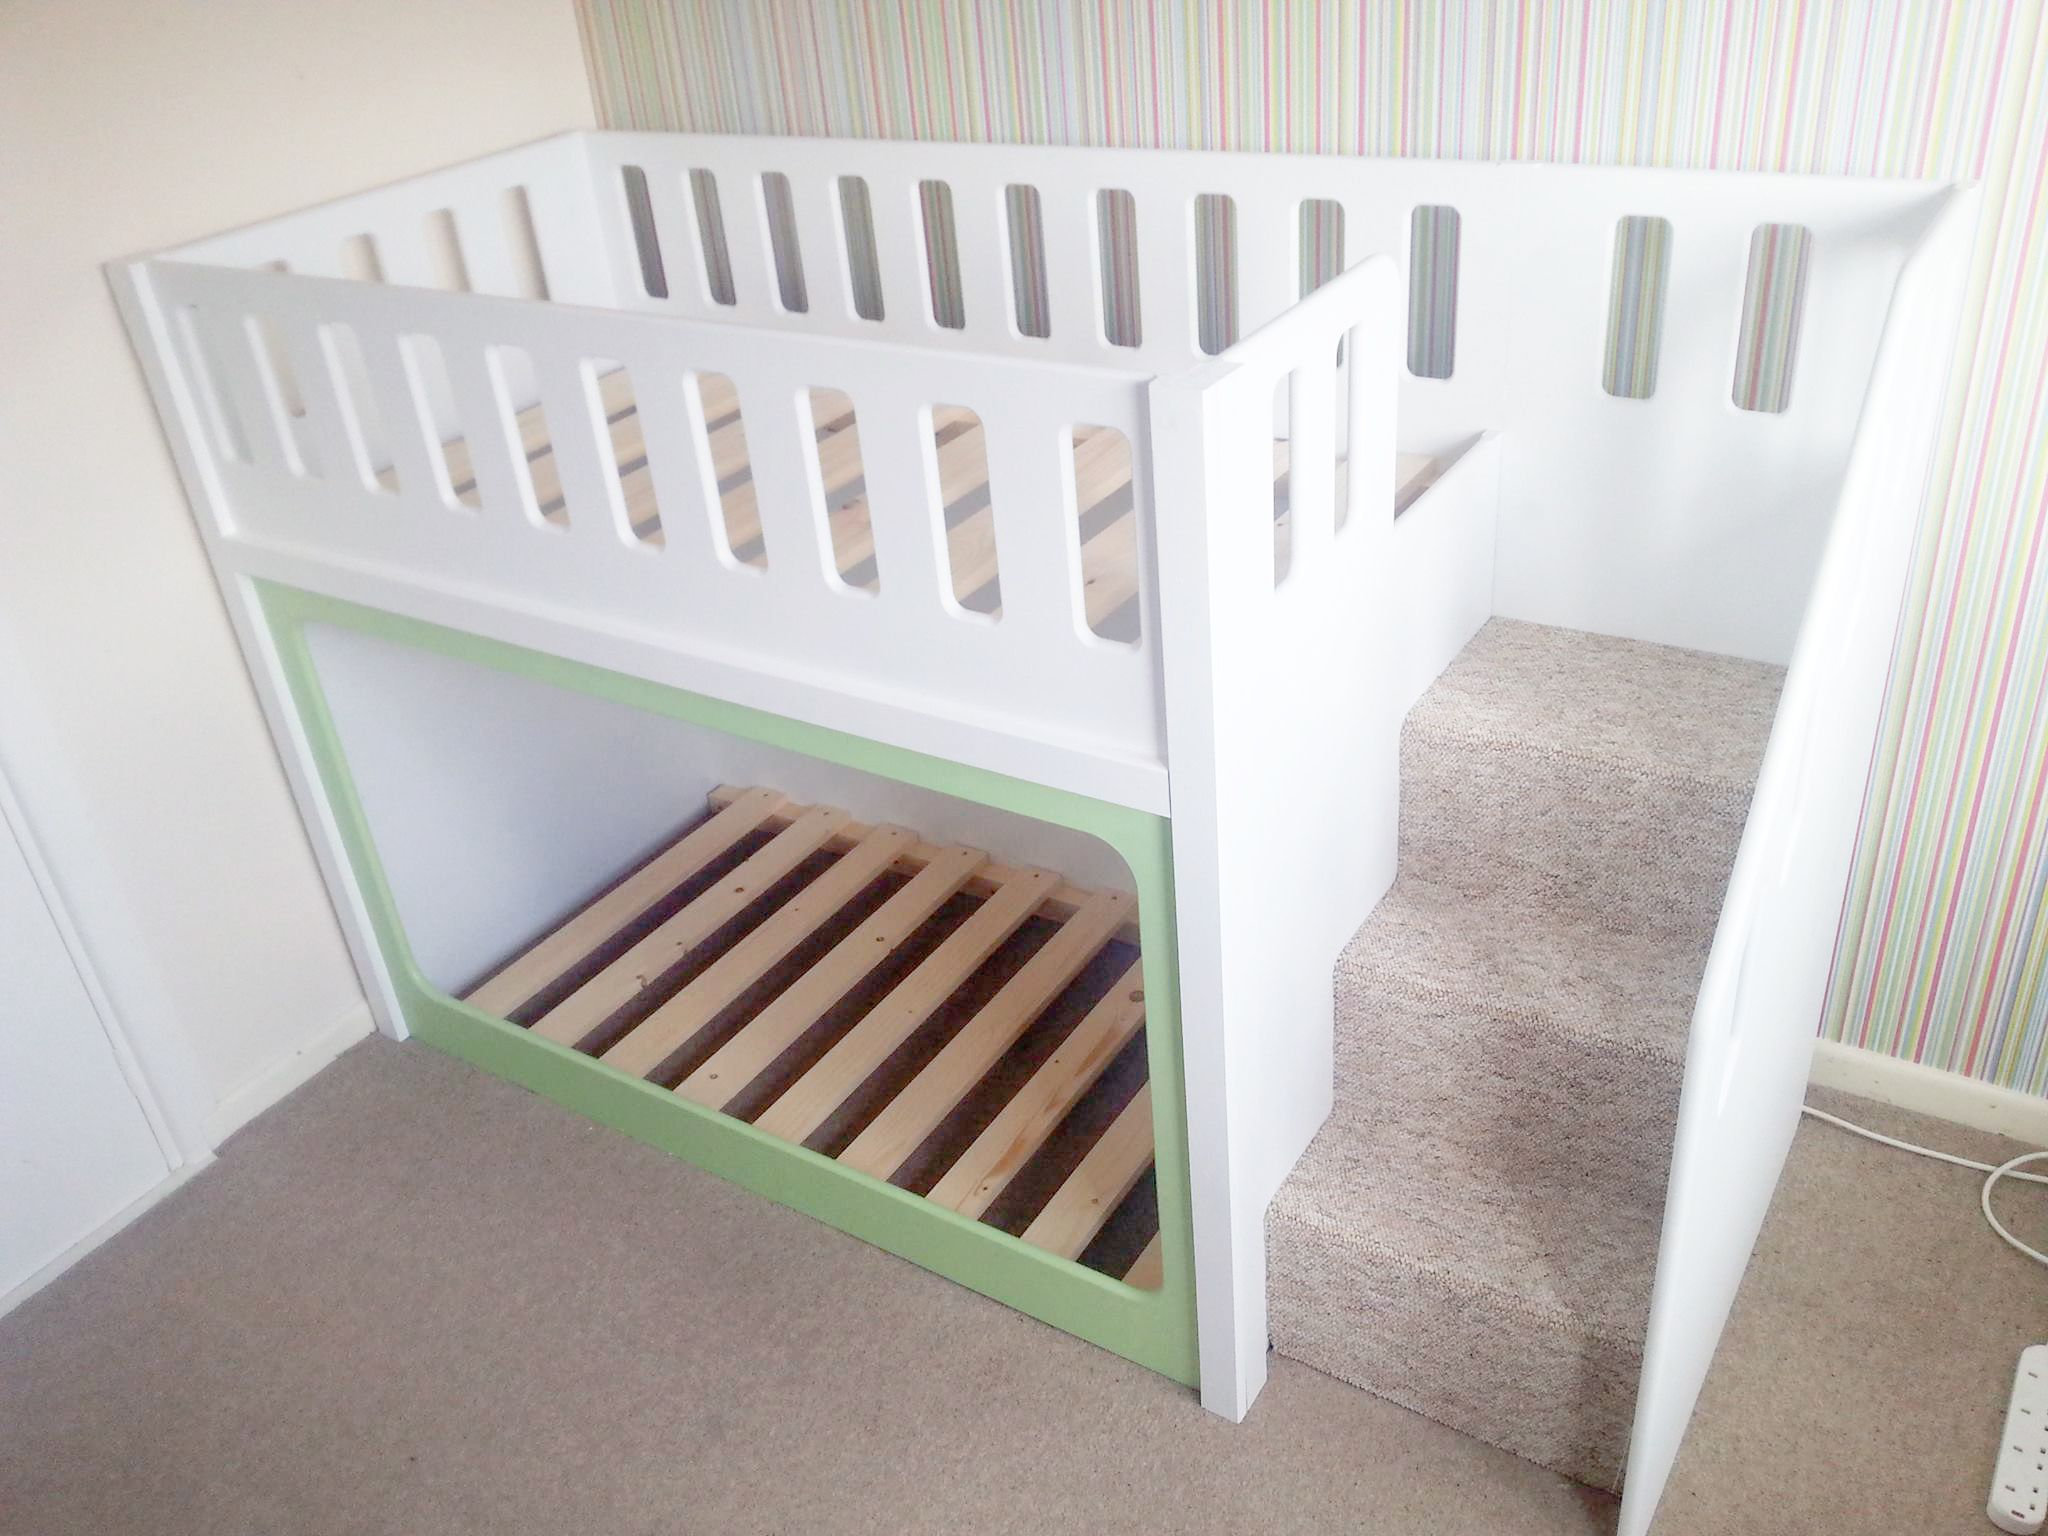 4 bunk beds with stairs - Image31 Jpg 2048 1536